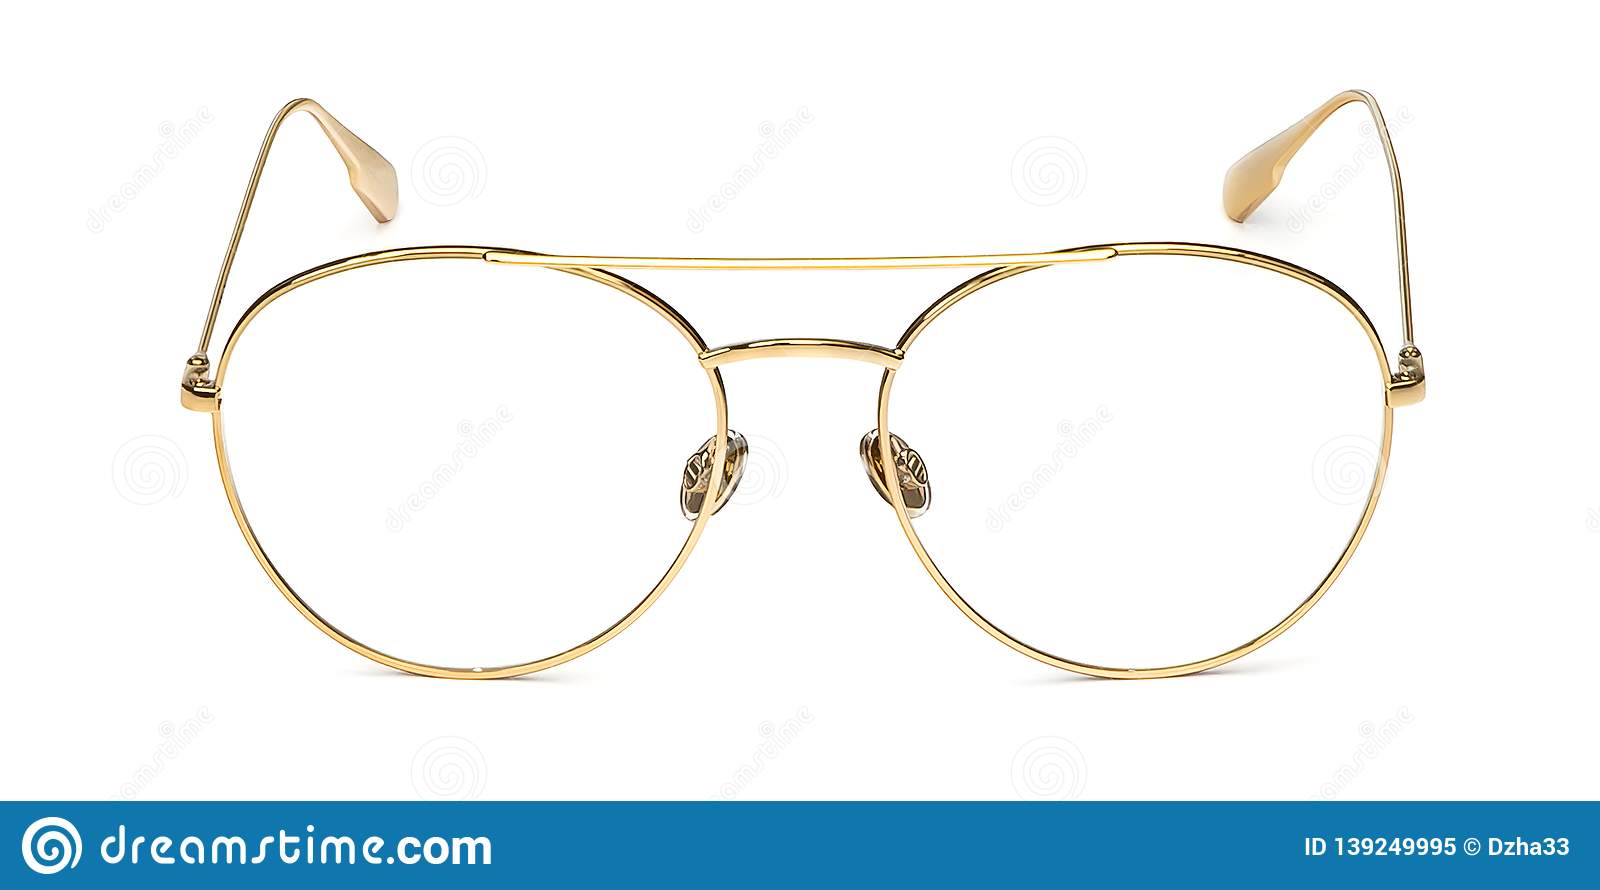 Gold glasses metal in round frame transparent for reading or good eye sight, front view isolated on white background